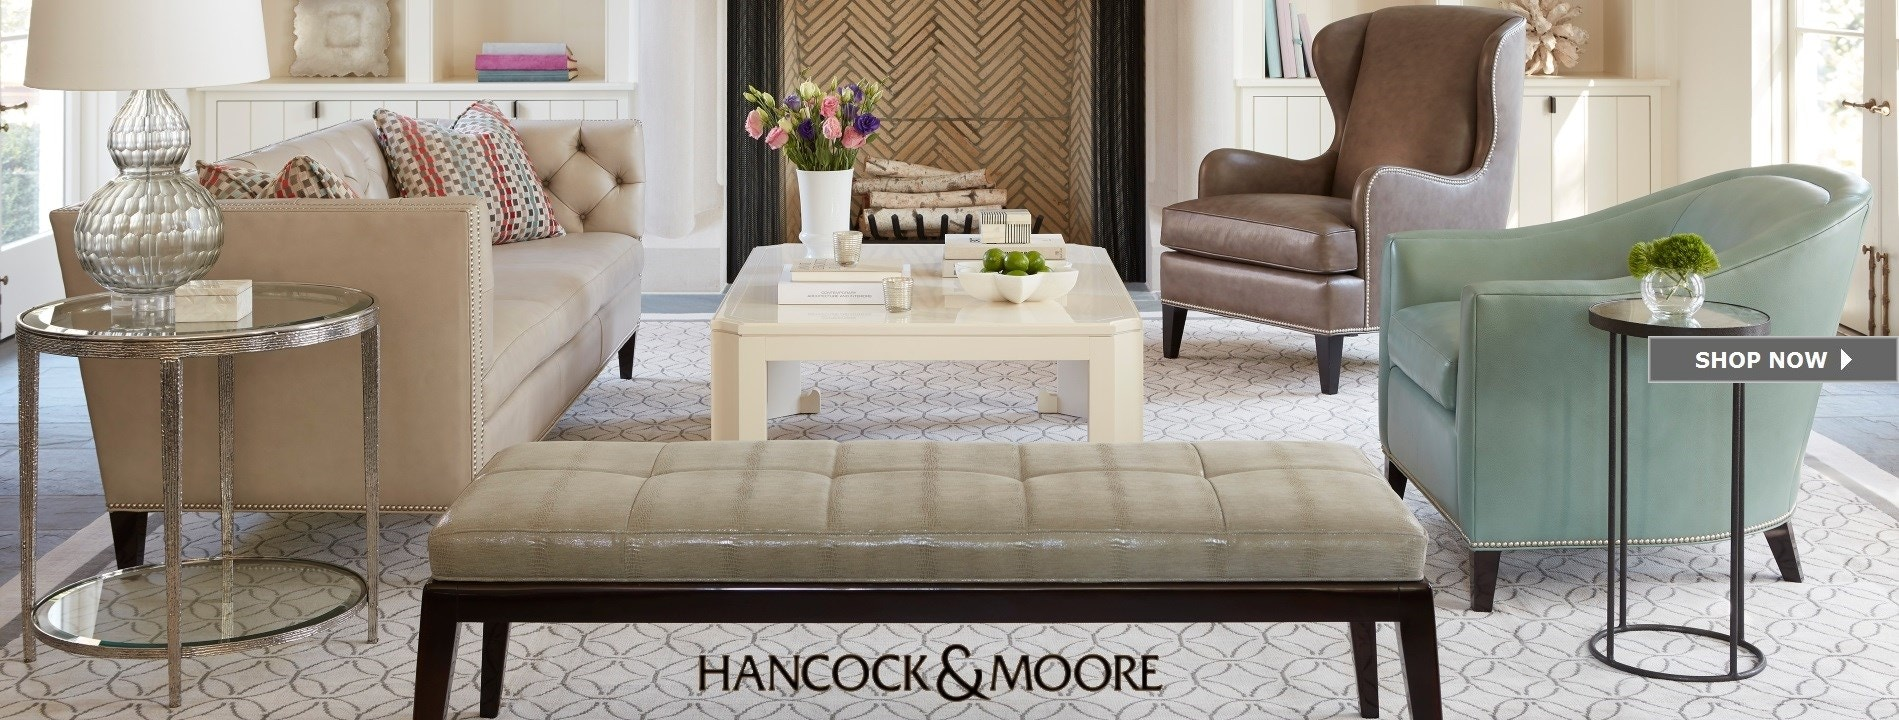 Merveilleux Hancock And Moore Furniture